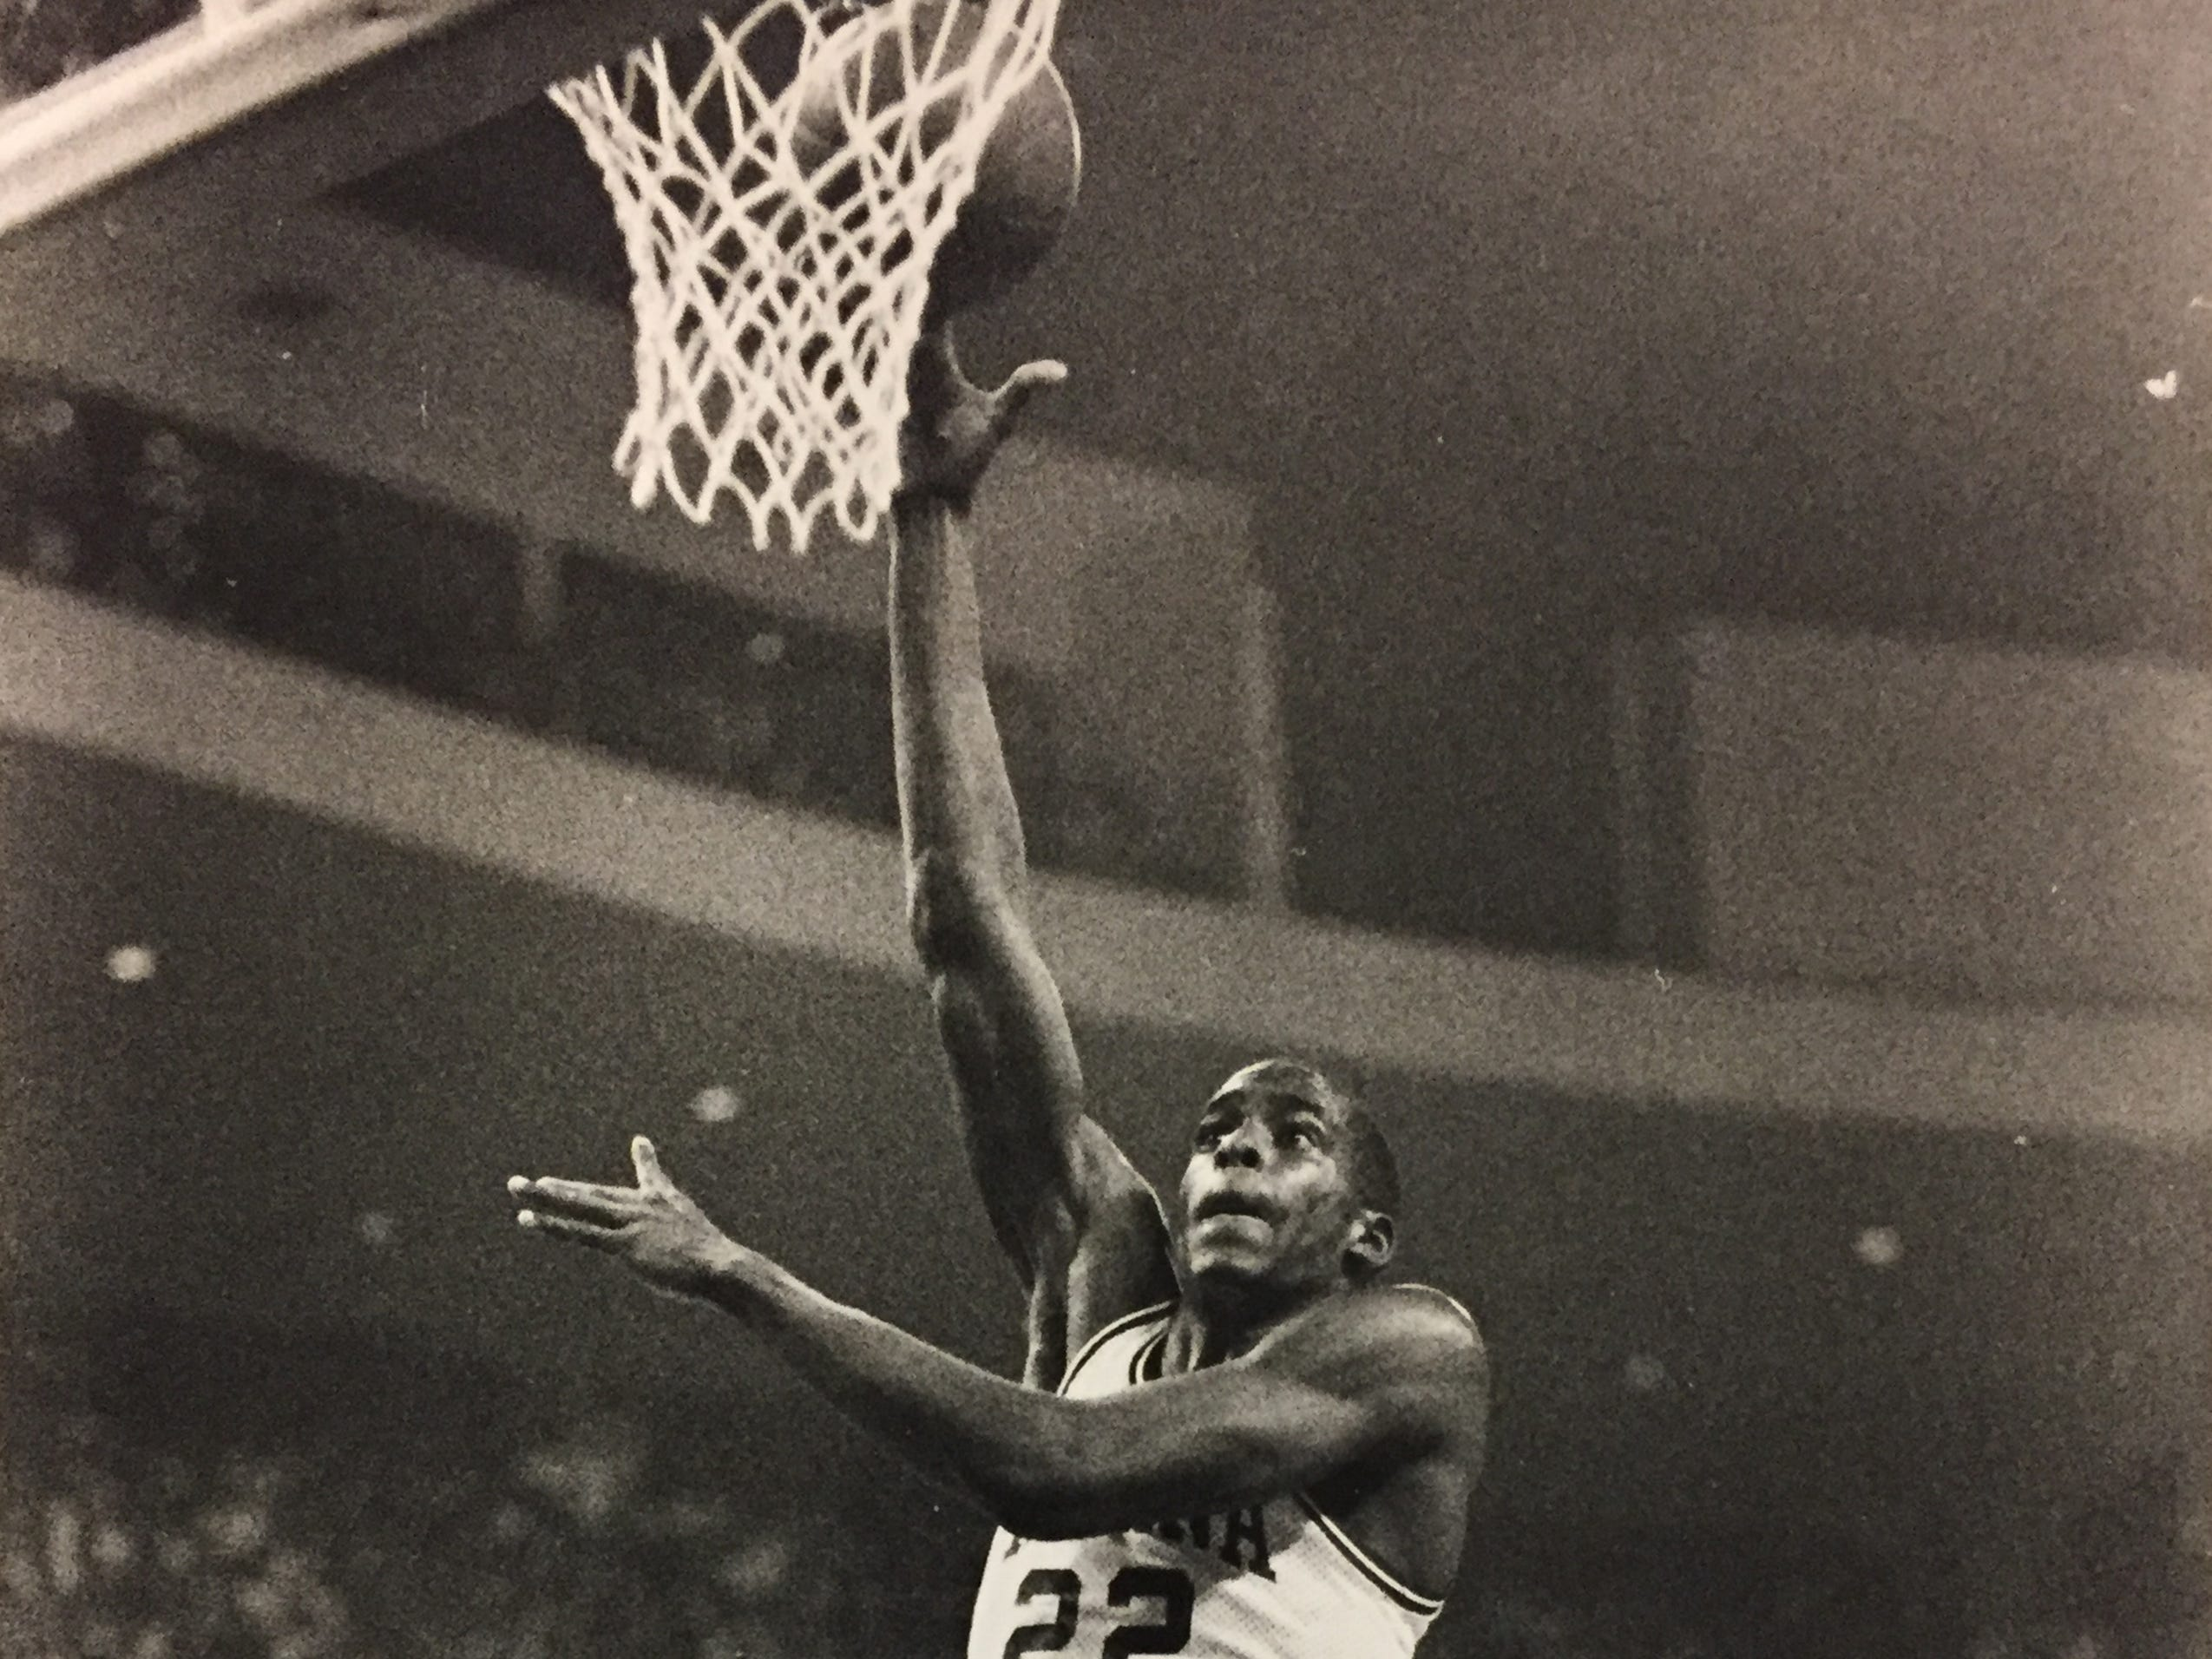 Dean Garrett (22) goes up for a shot against LSU on March 22, 1987 in the NCAA tournament.